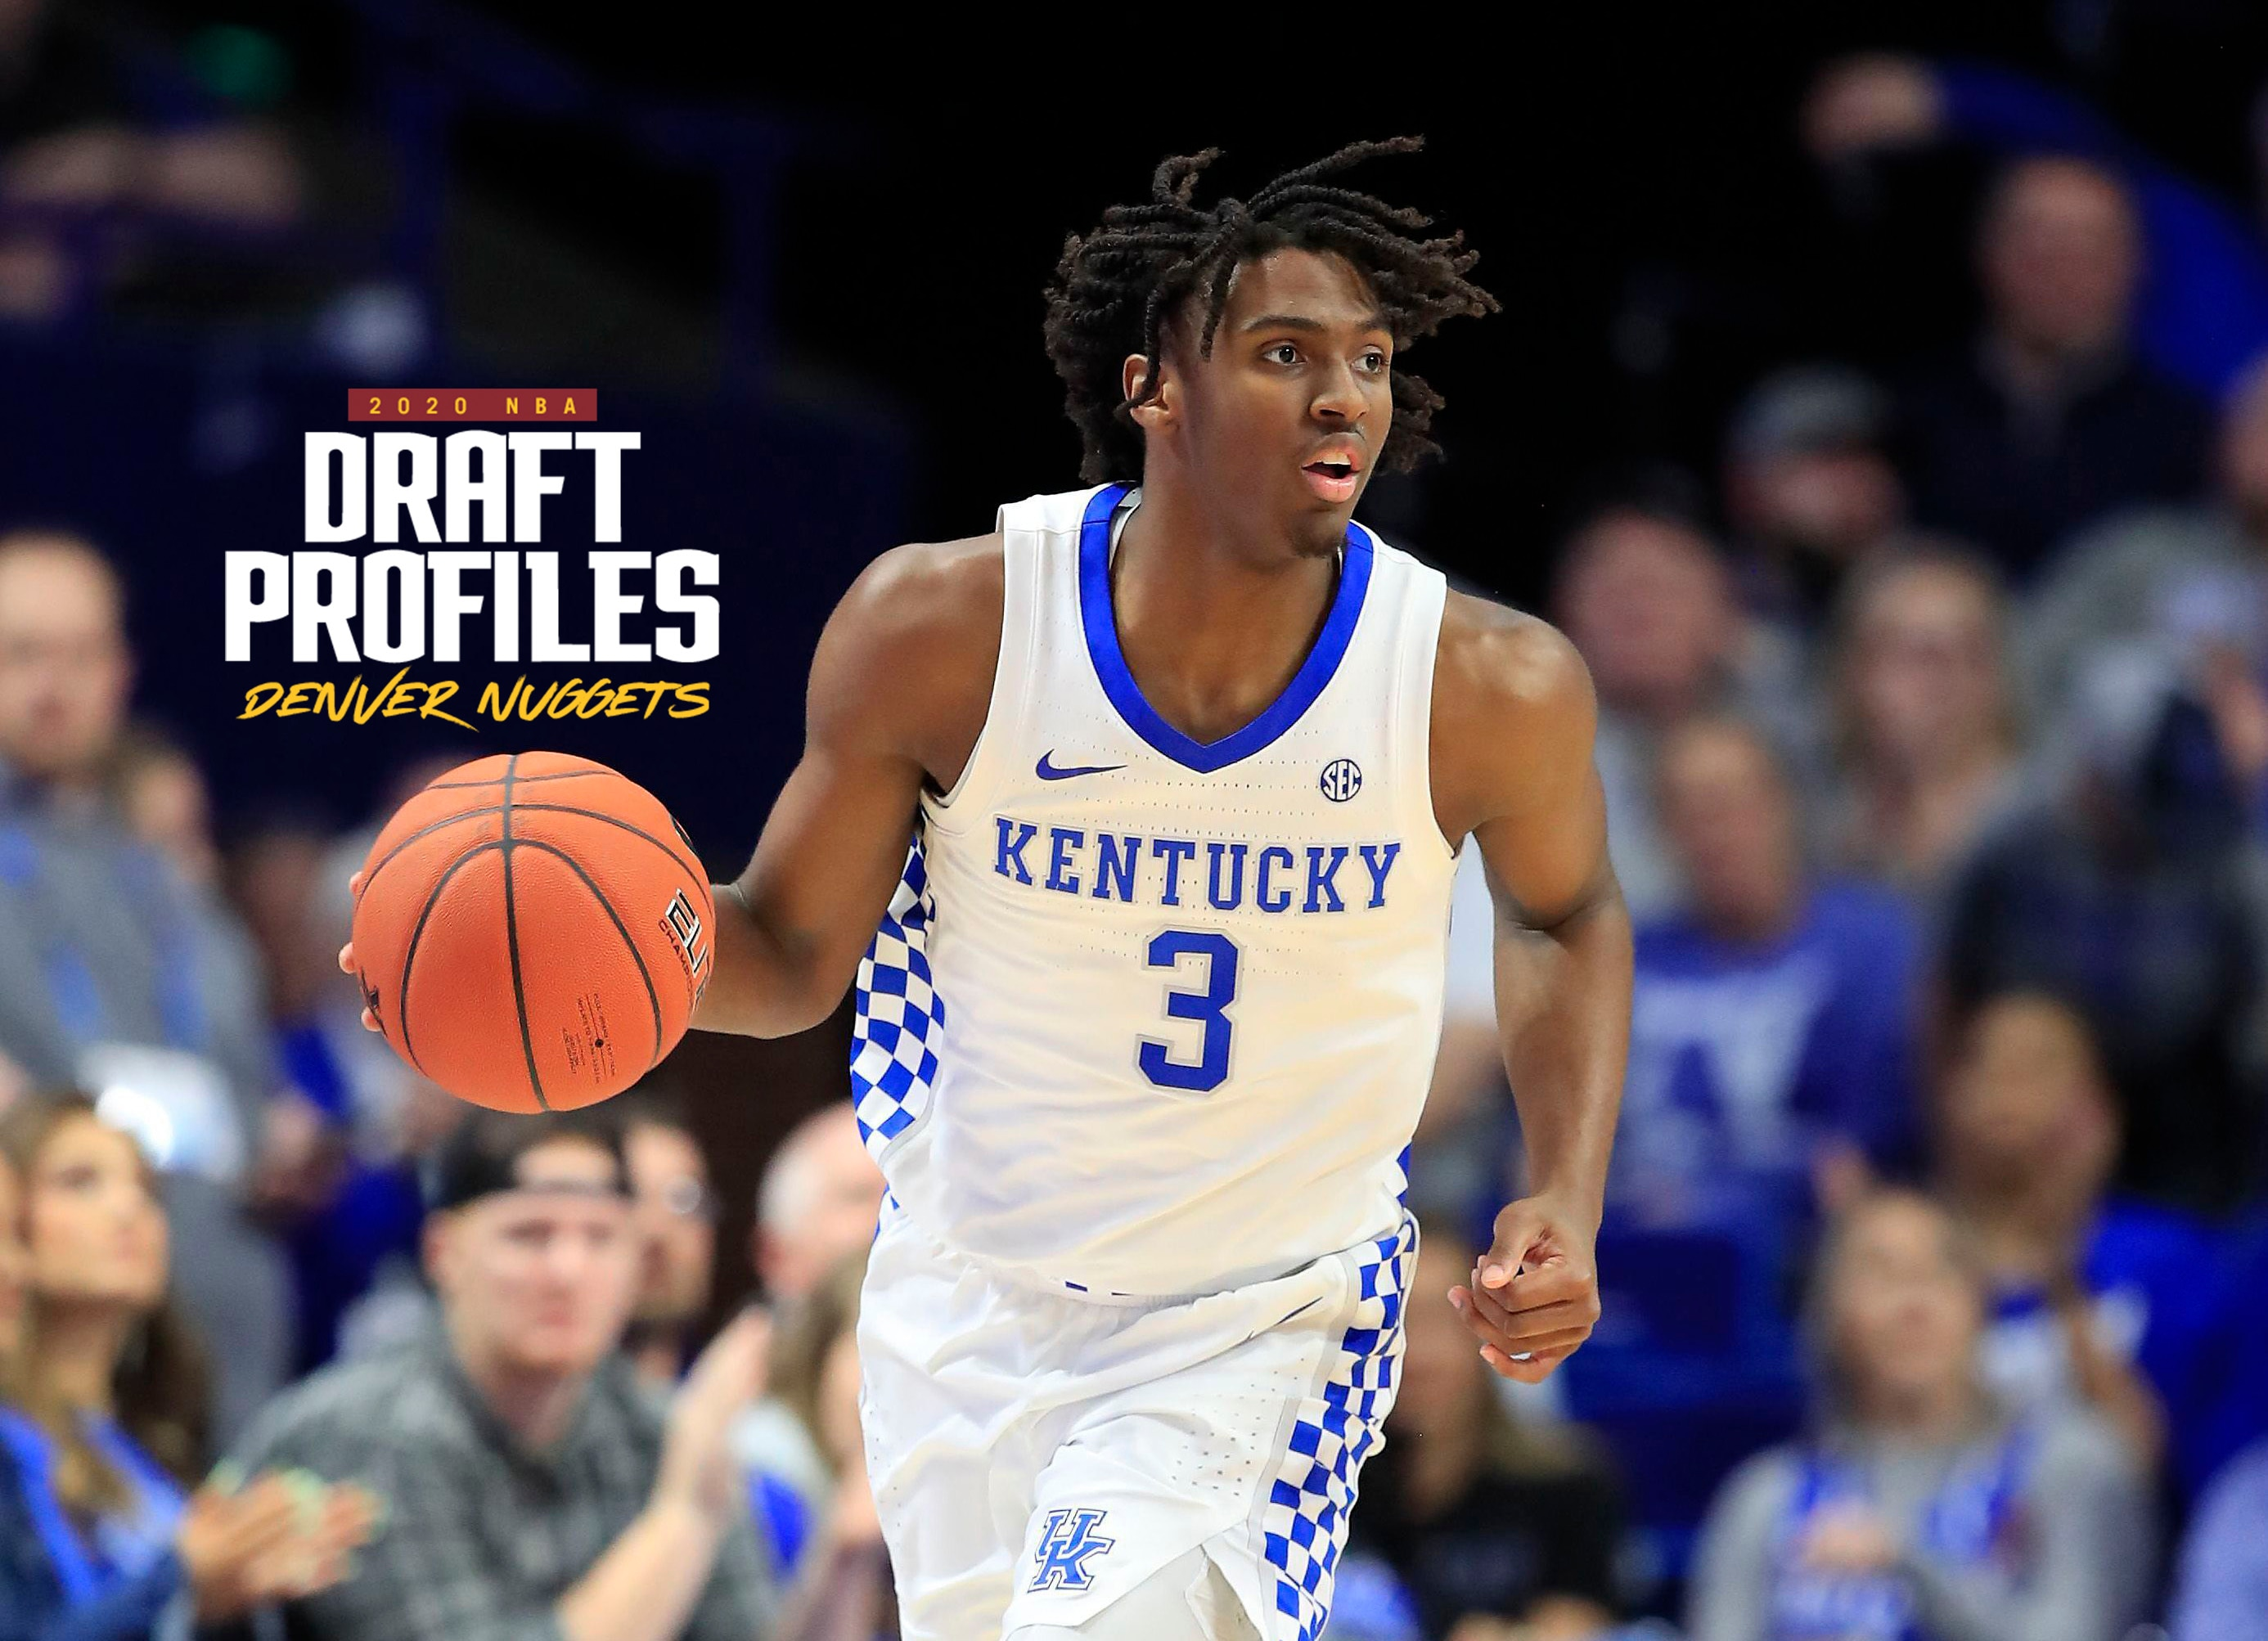 Nba Draft 2020 Profile Kentucky S Tyrese Maxey Offers Size And Speed At Guard Denver Nuggets